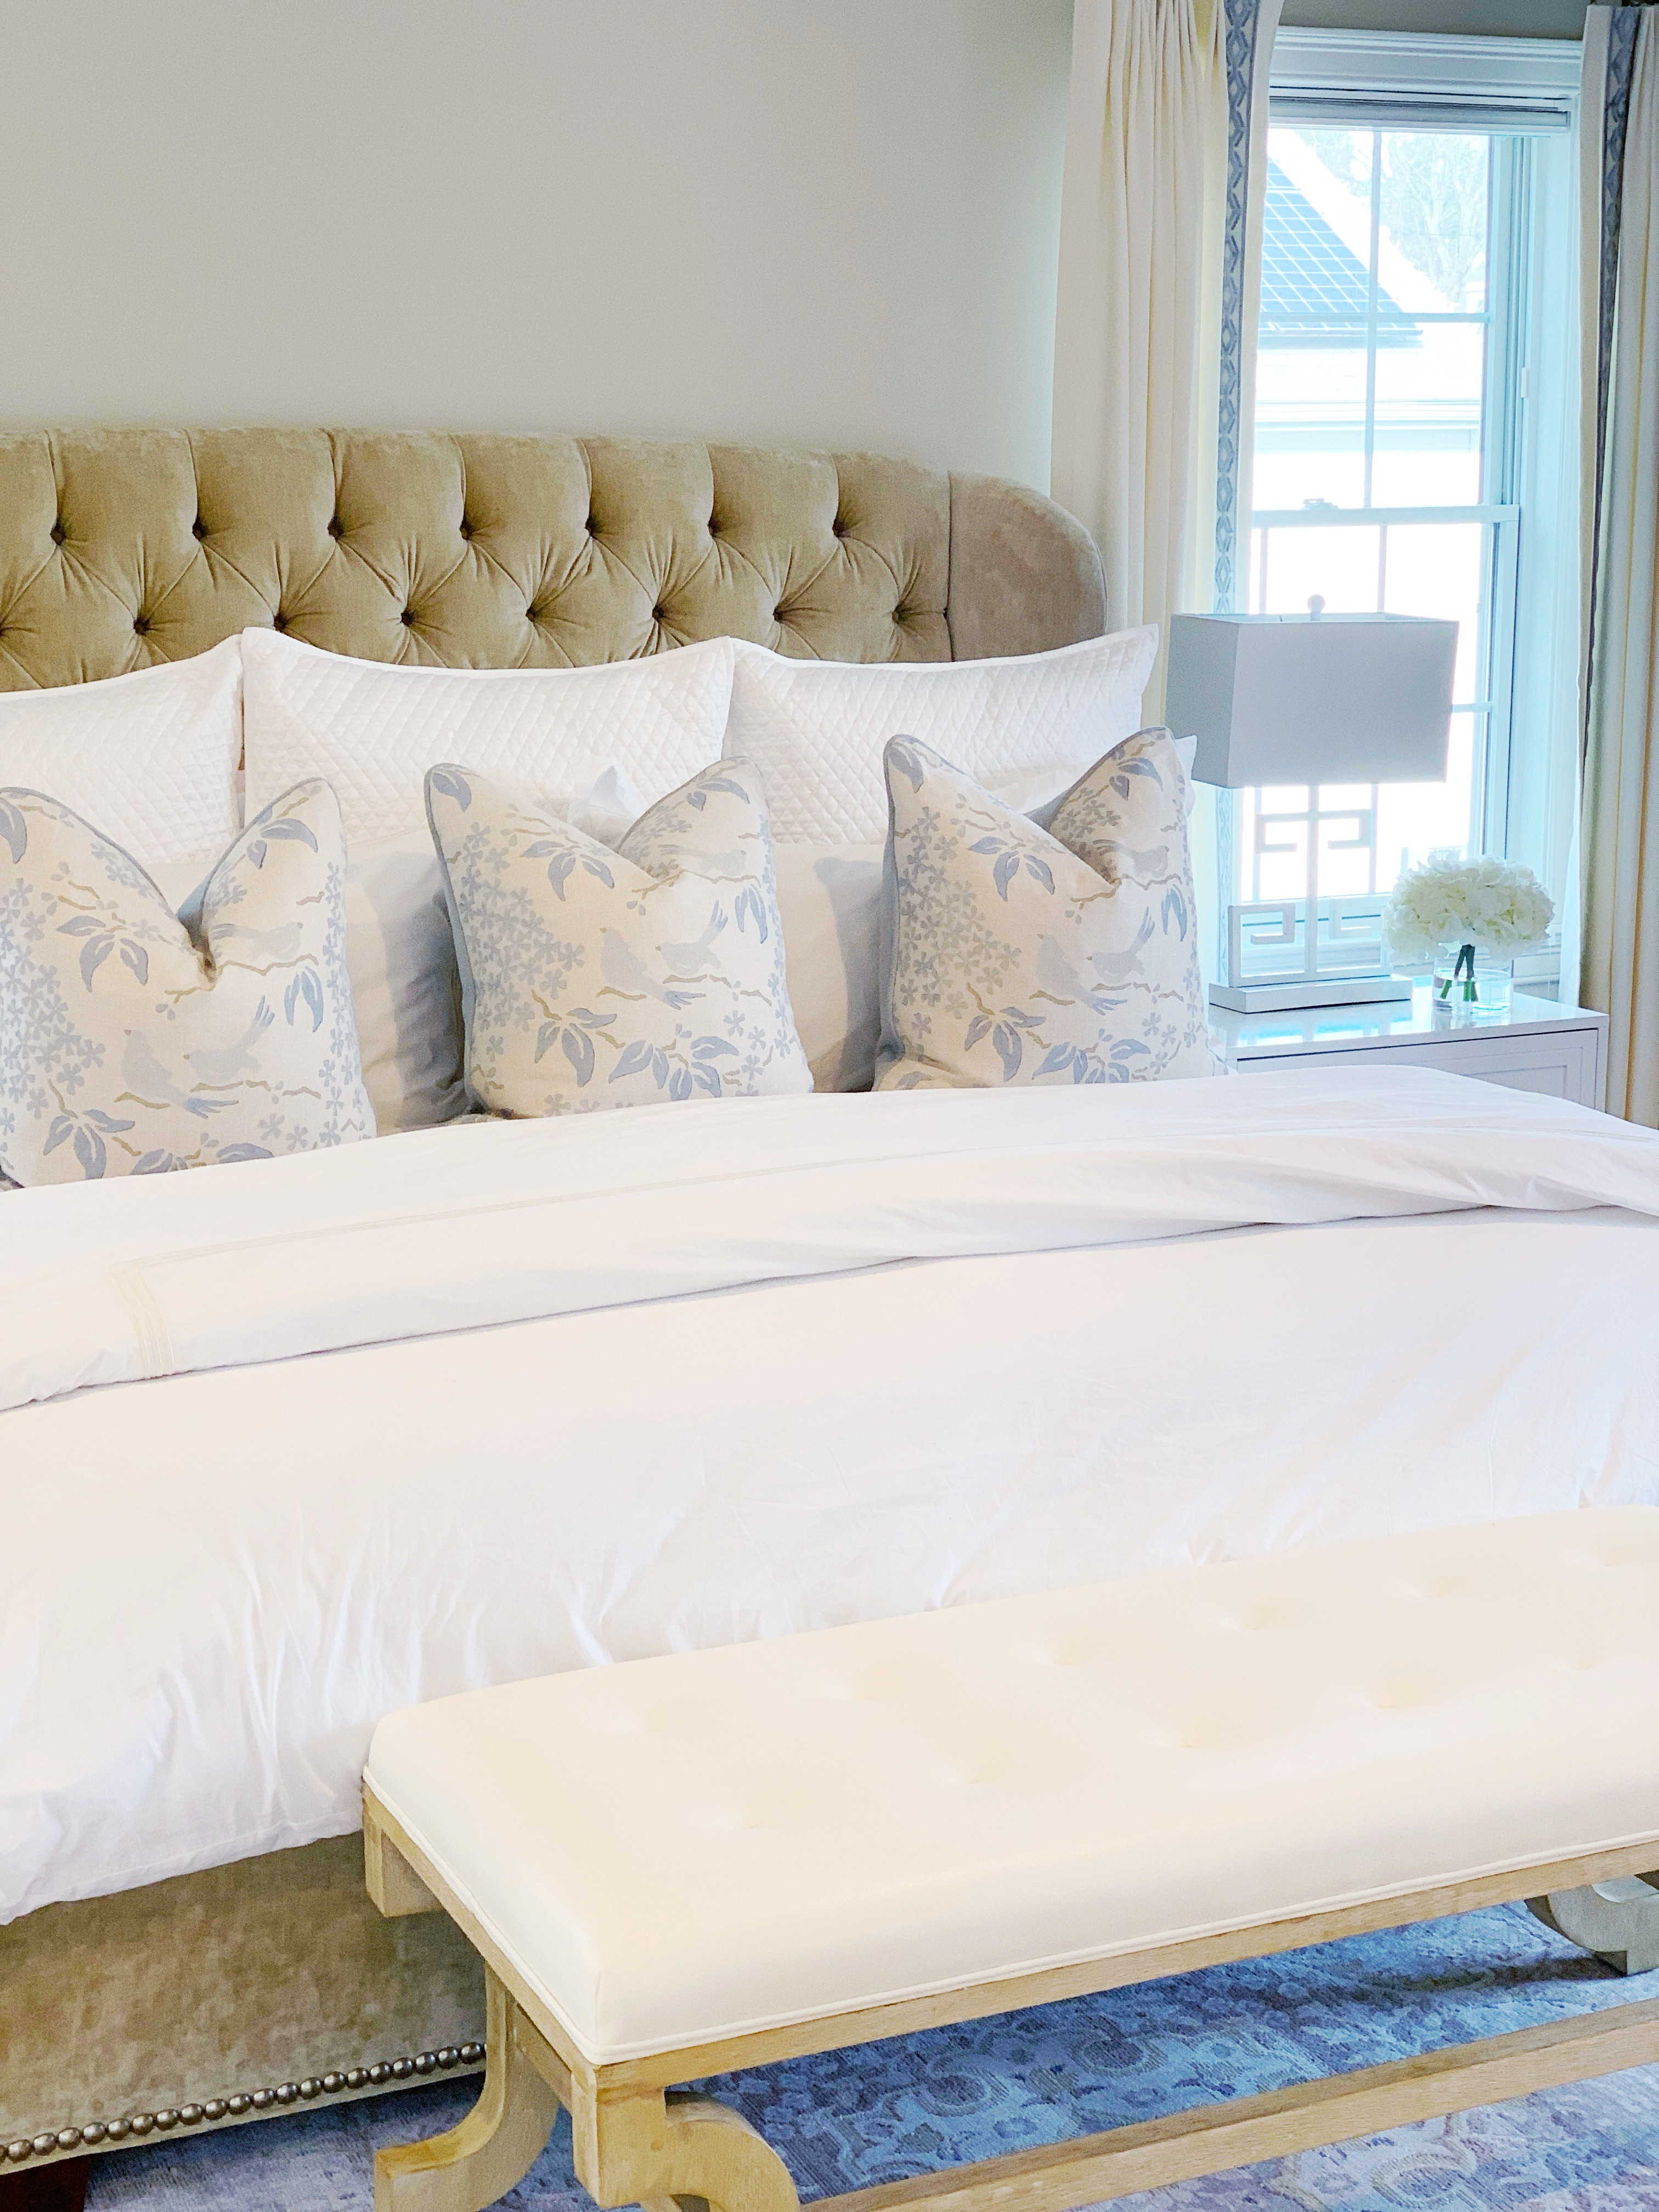 Neatly made bed with neutral colored throw pillows.